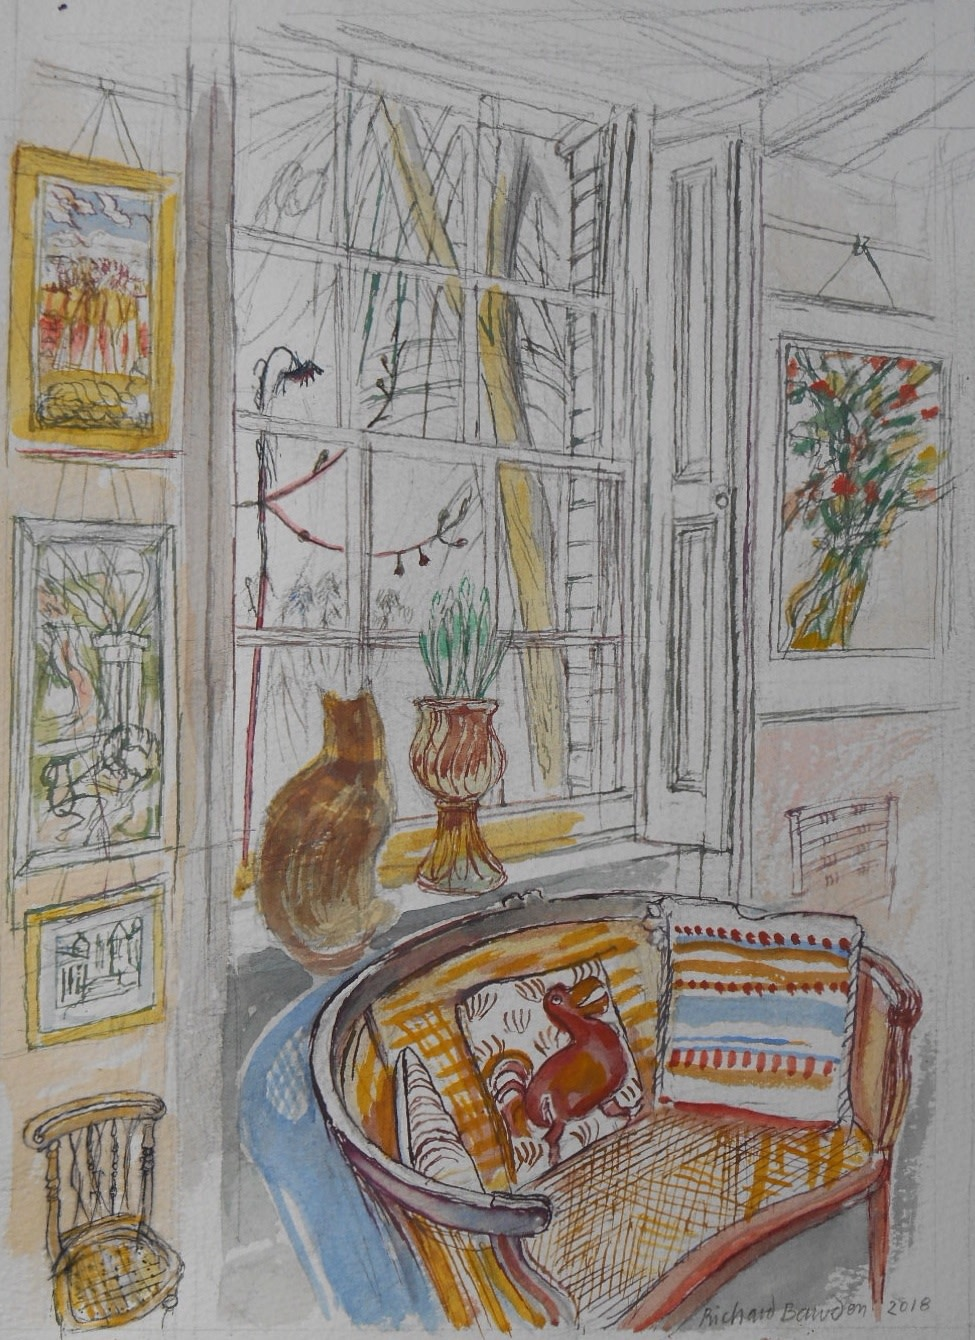 <span class=&#34;link fancybox-details-link&#34;><a href=&#34;/artists/38-richard-bawden/works/10687-richard-bawden-the-dodo-cushion/&#34;>View Detail Page</a></span><div class=&#34;artist&#34;><span class=&#34;artist&#34;><strong>Richard Bawden</strong></span></div>